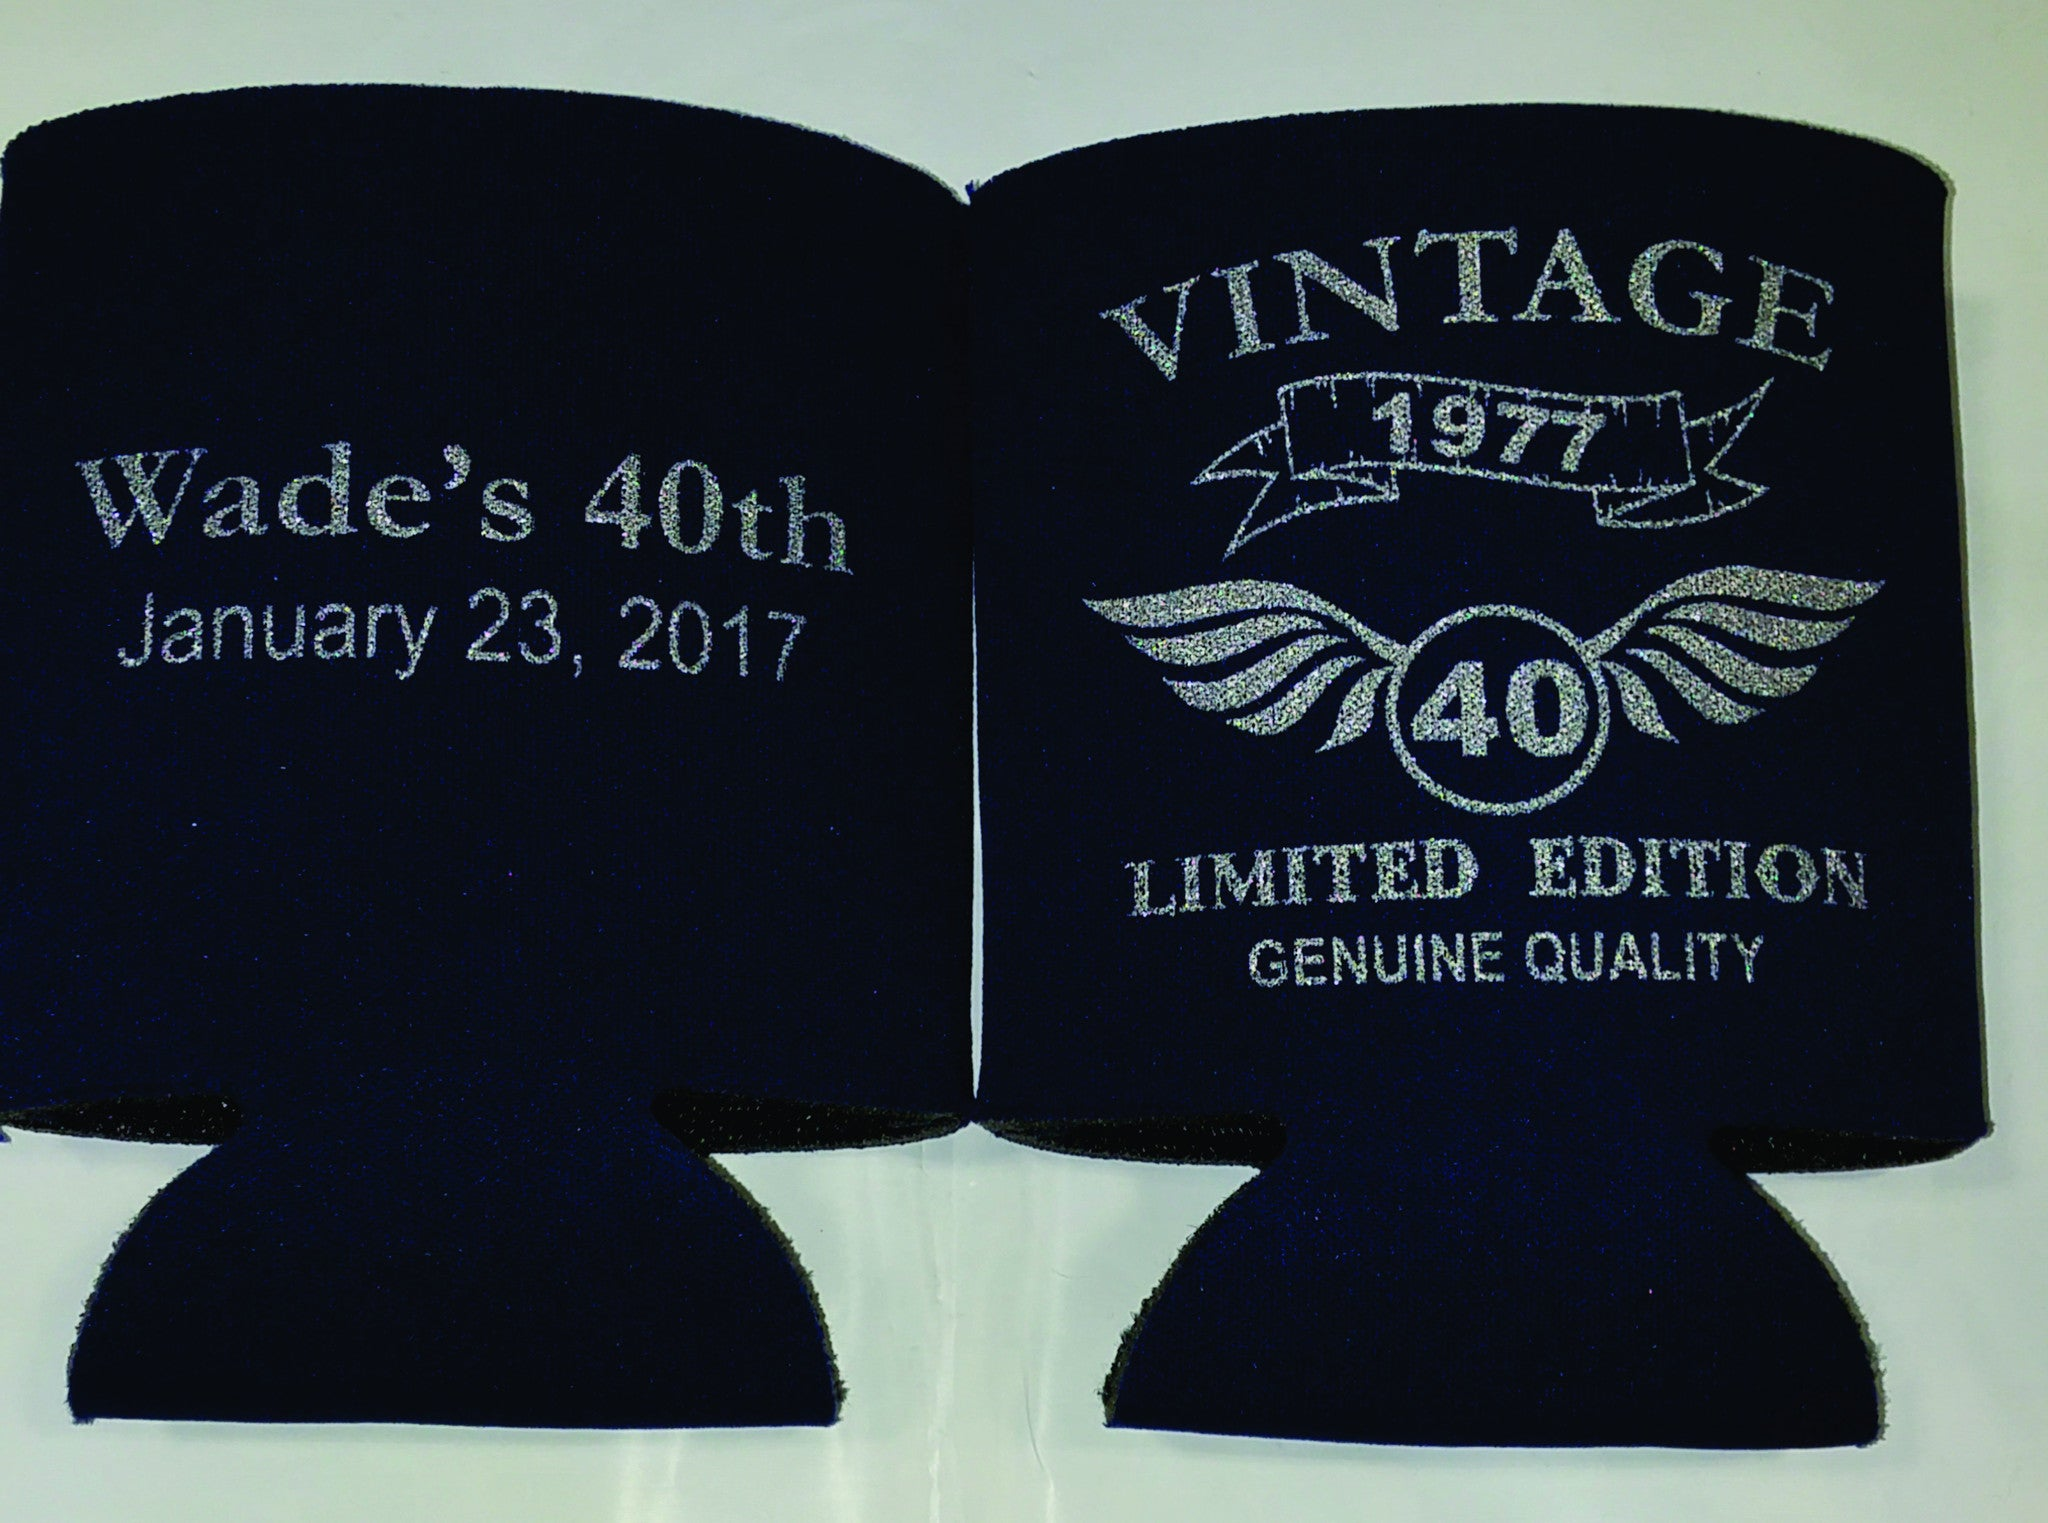 Vintage 40th Birthday party favors can coolers 1118577674